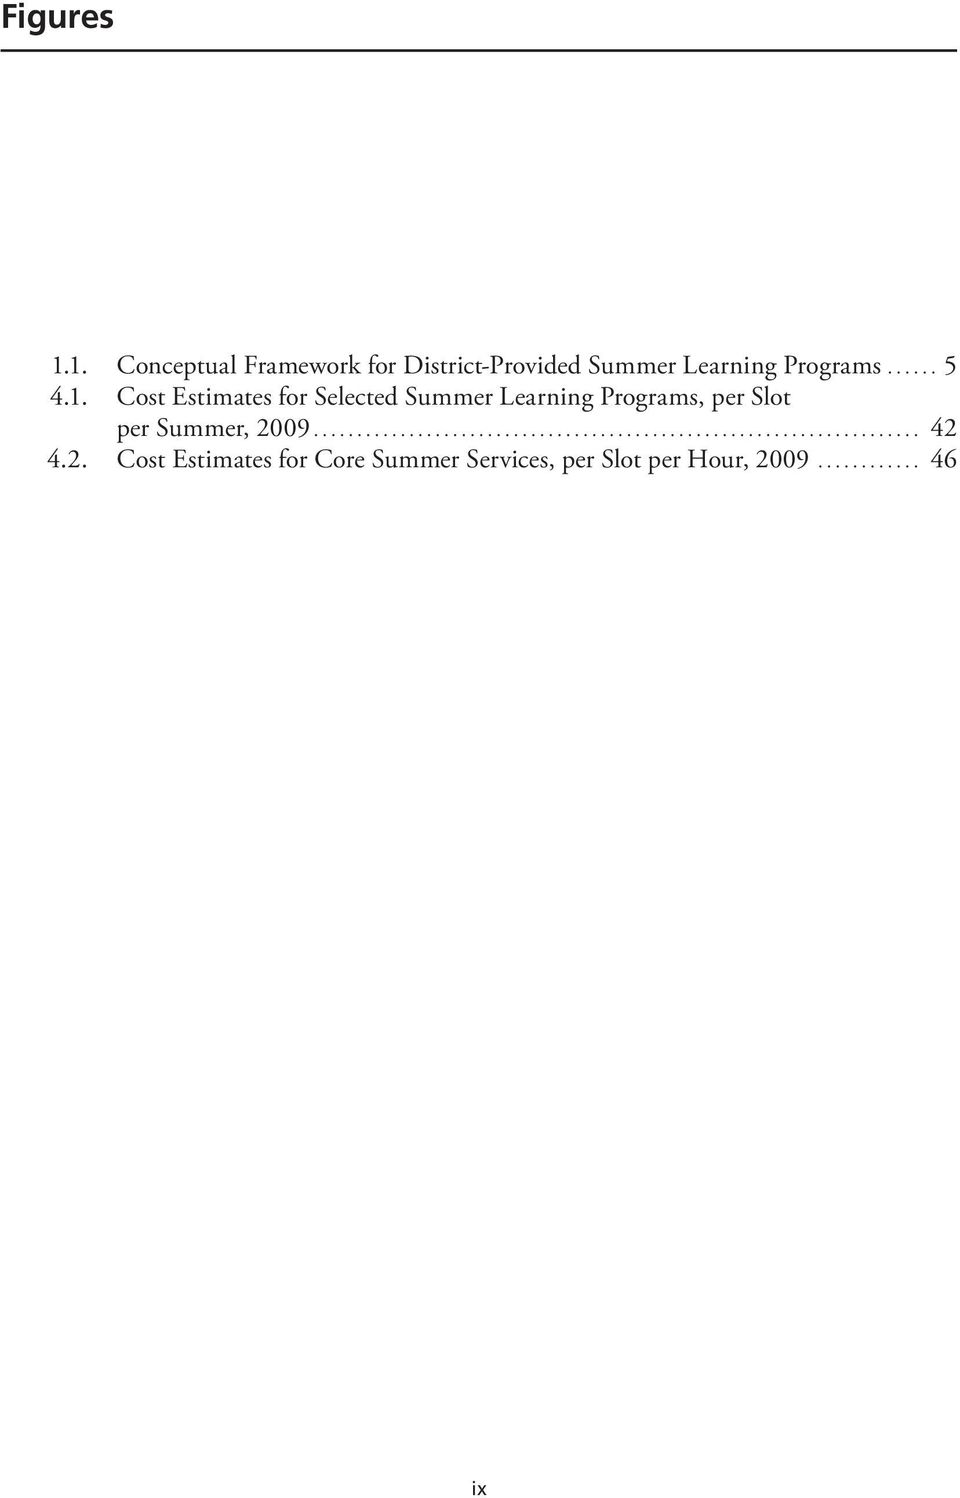 Cost Estimates for Selected Summer Learning Programs, per Slot per Summer, 2009.